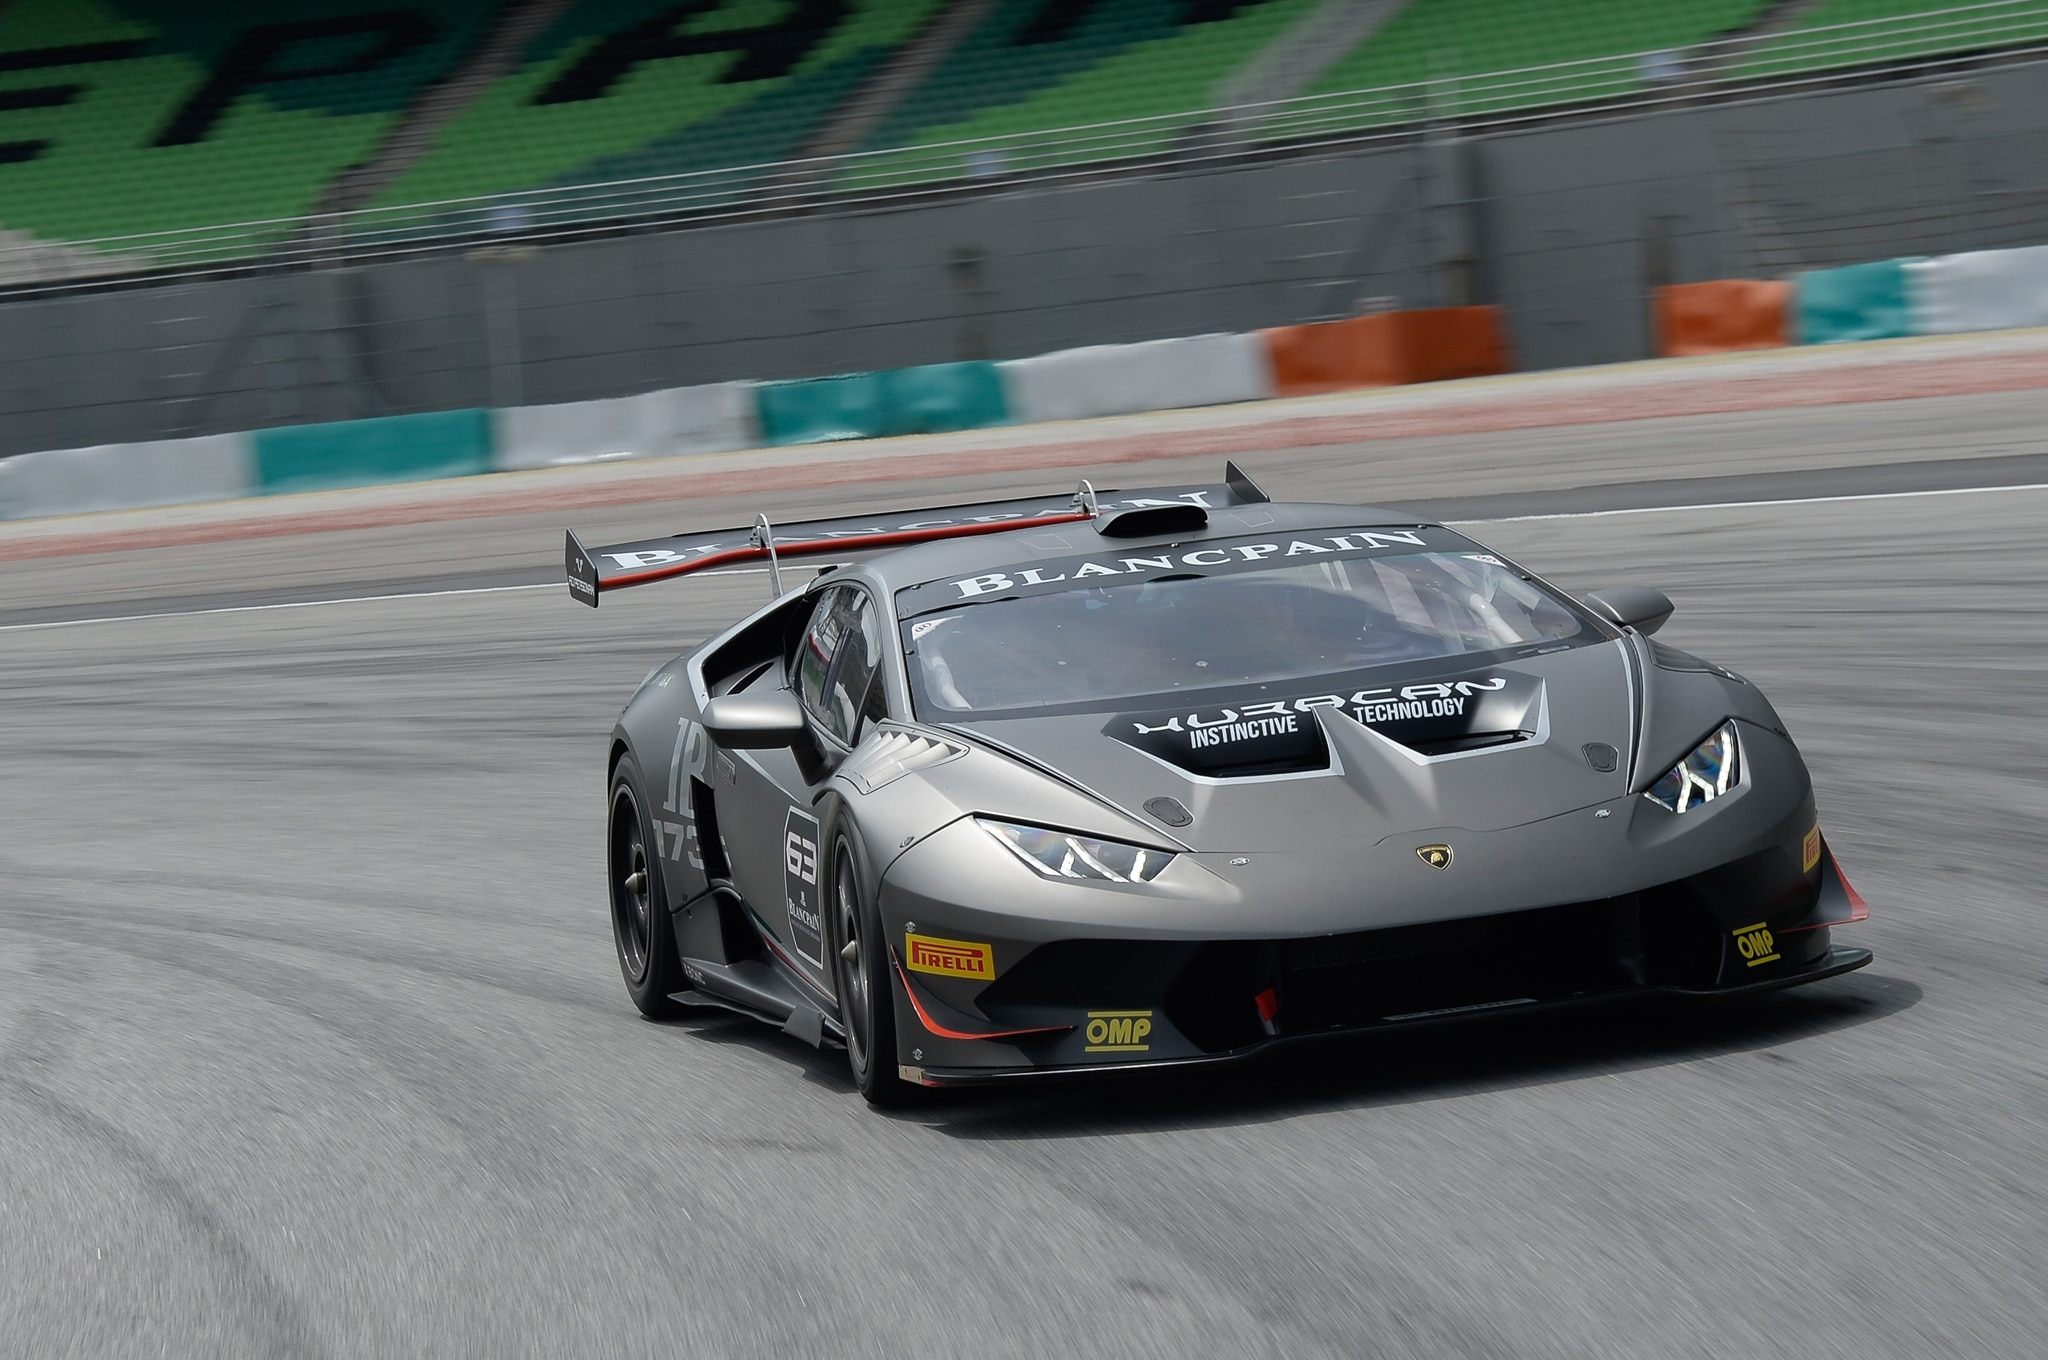 2015-Lamborghini-Huracan-LP-620-2-Super-Trofeo-front-three-quarter-in-motion-9 Stunning Lamborghini Huracan Price Real Racing 3 Cars Trend